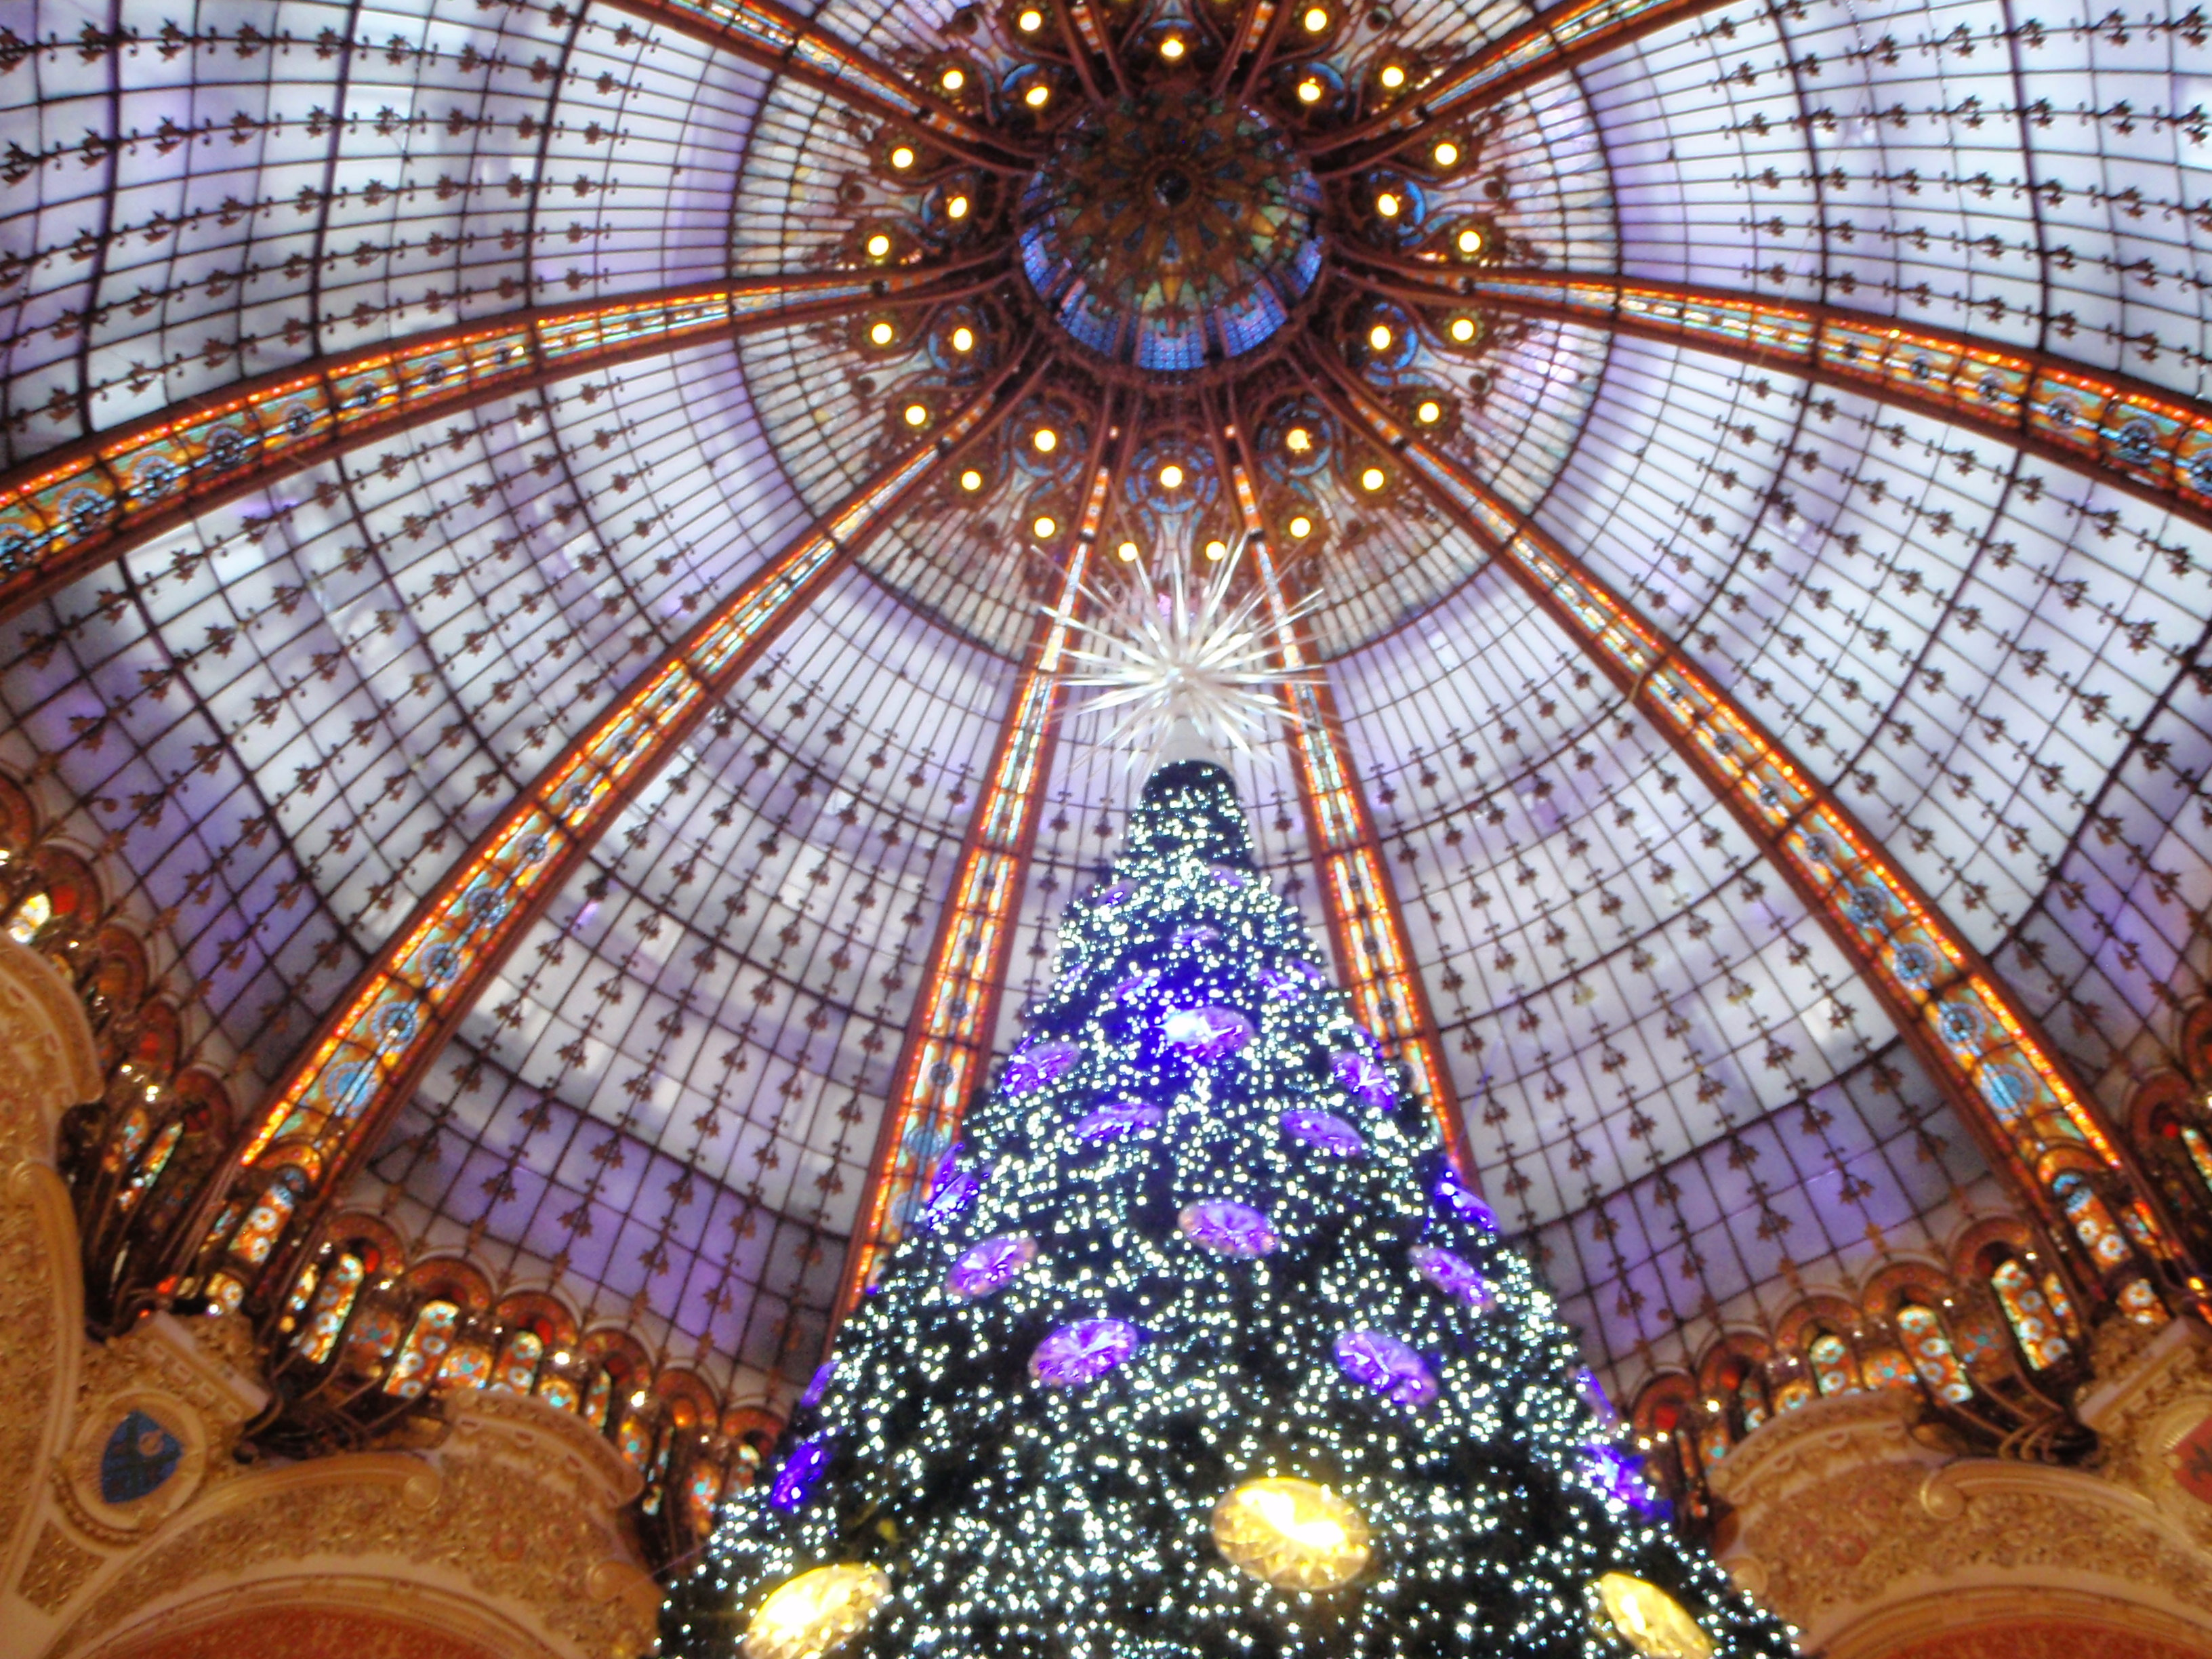 Discovering The City of Lights by Christmas Discovering The City of Lights by Christmas pb270685